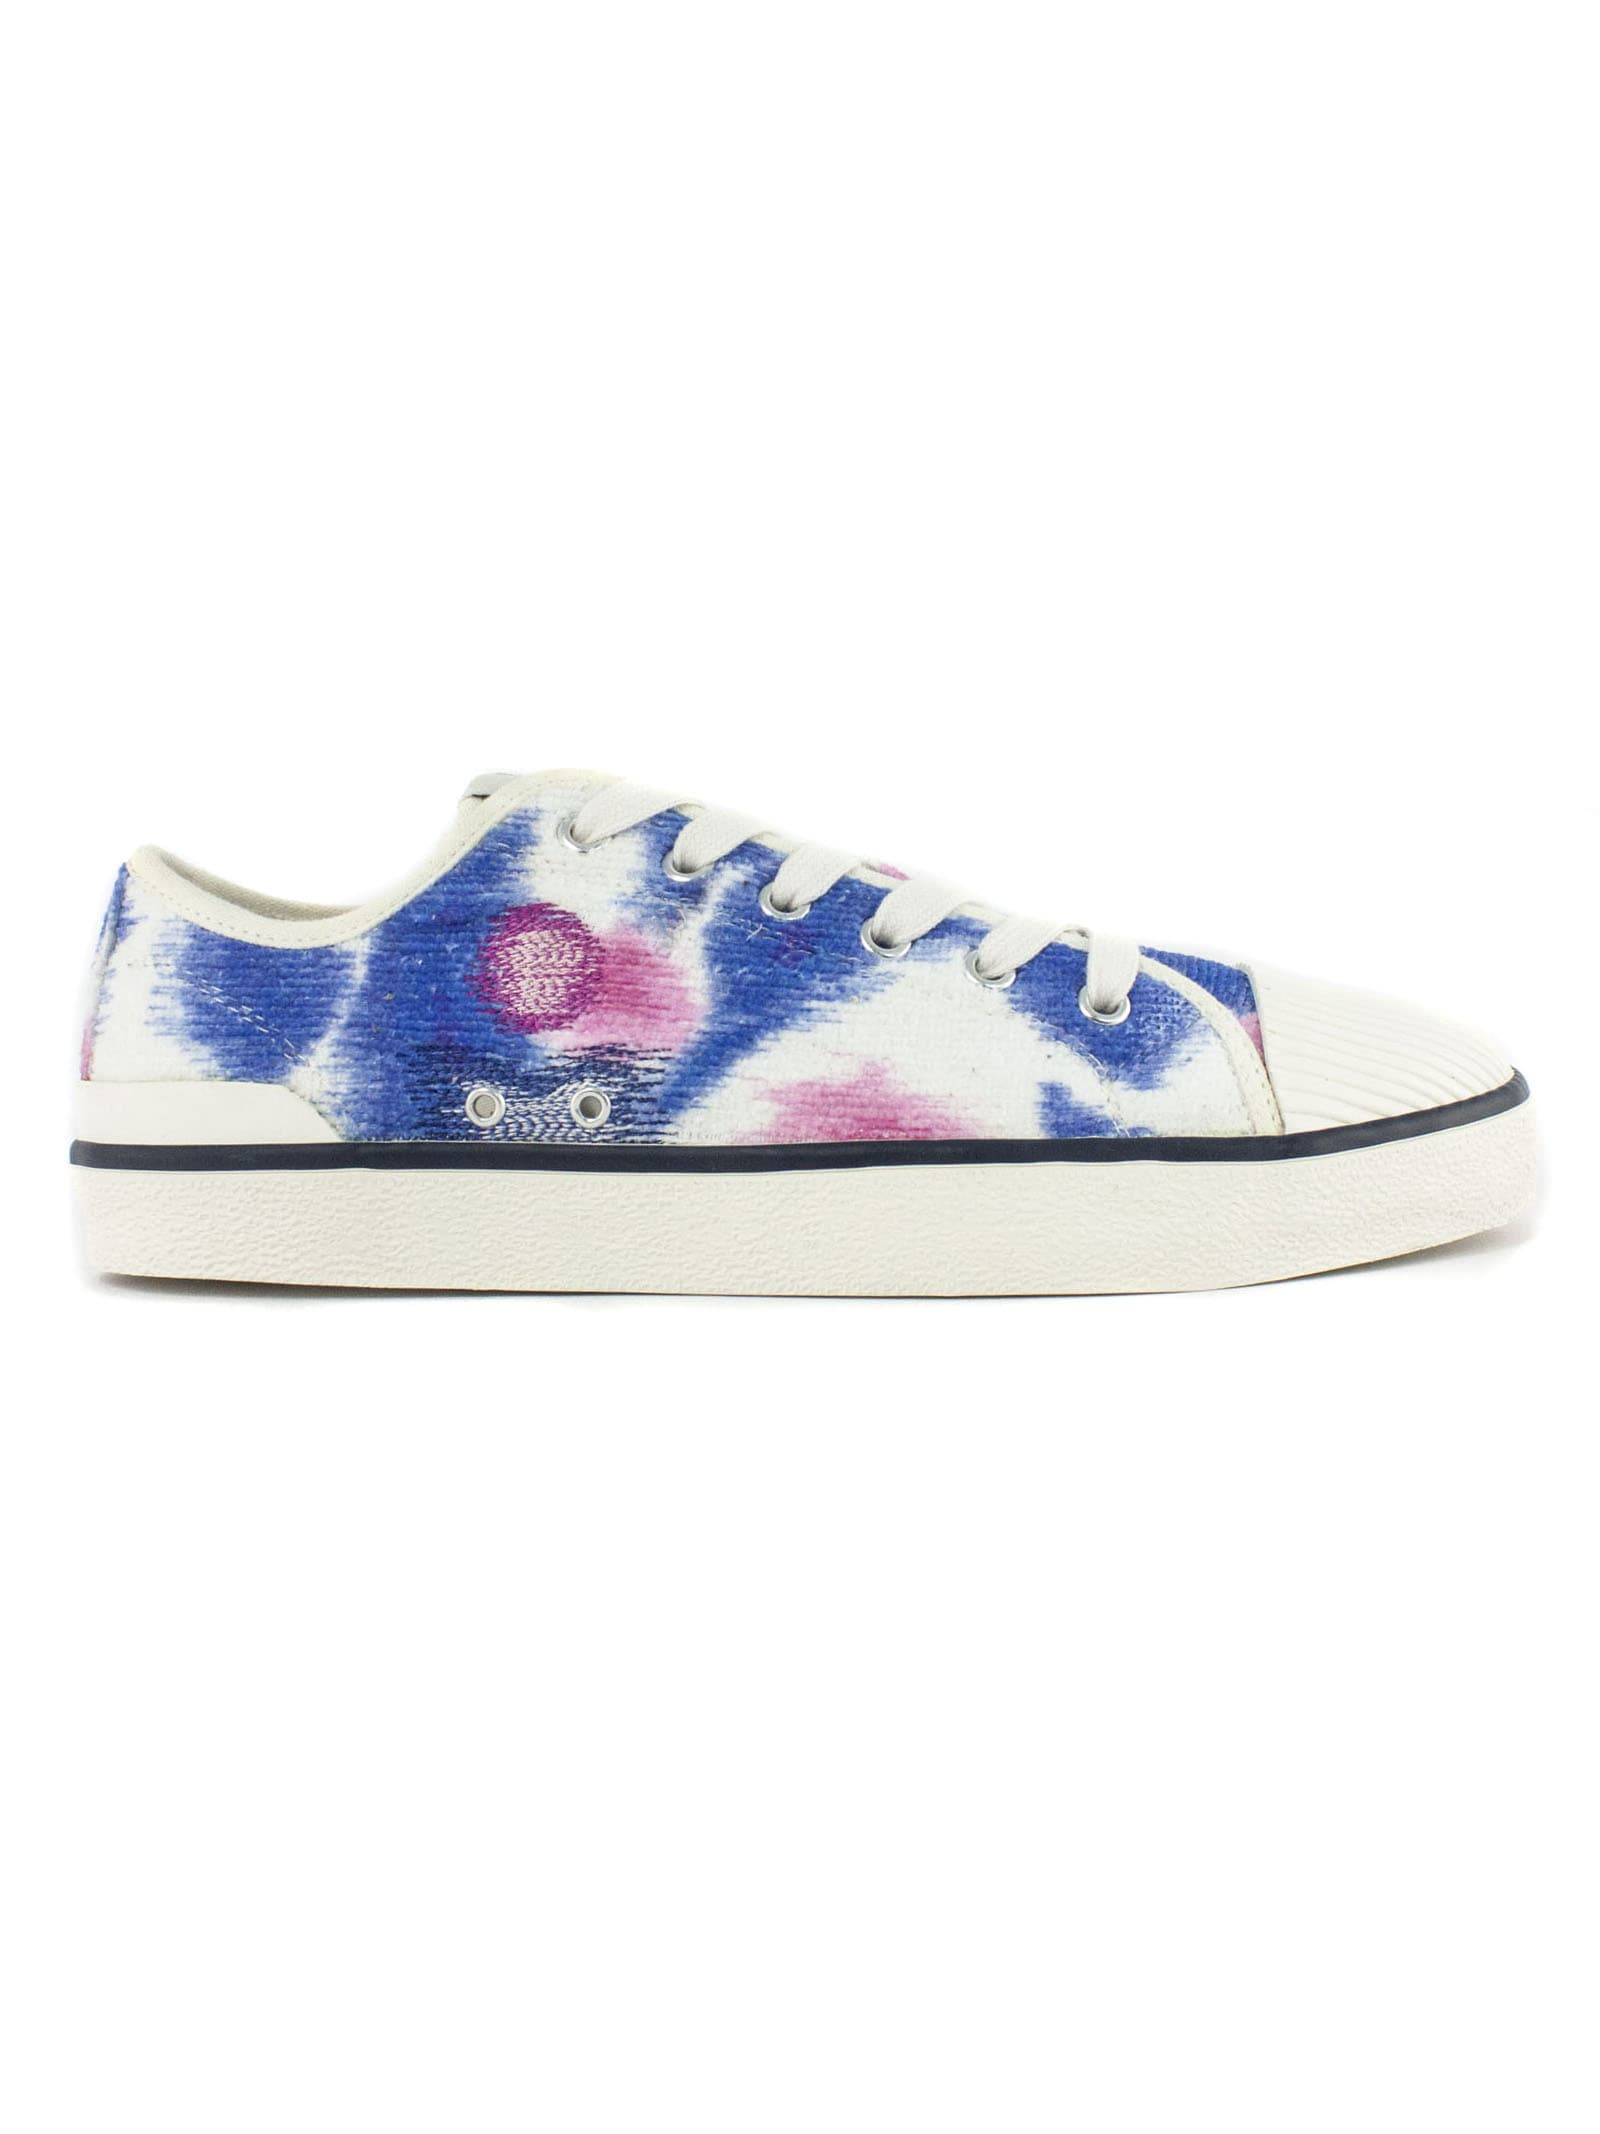 Isabel Marant Multicolored Cotton Sneakers